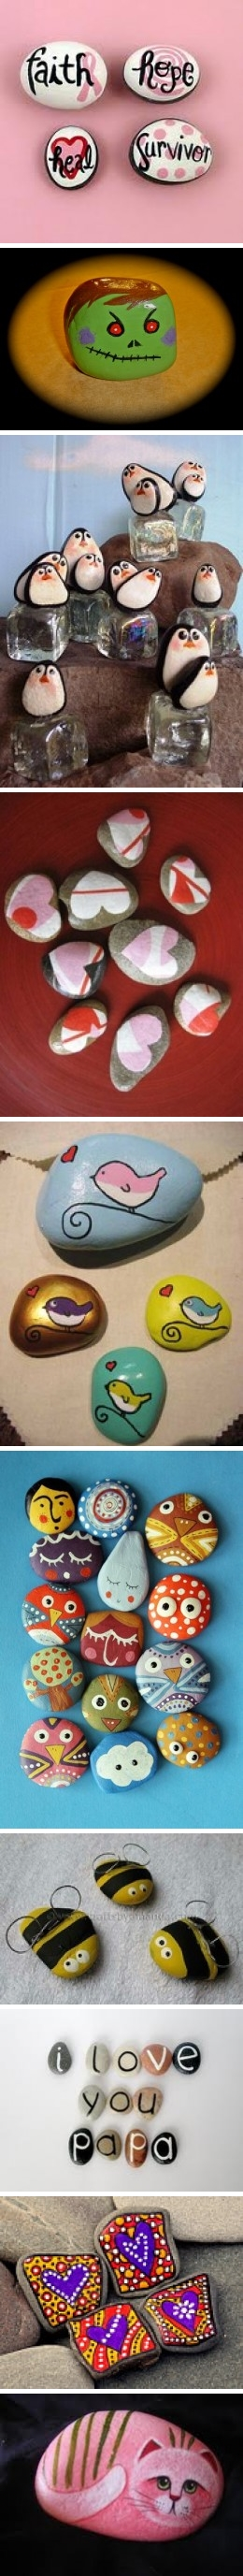 How to paint beautiful rock painting decoration step by step DIY tutorial instructions